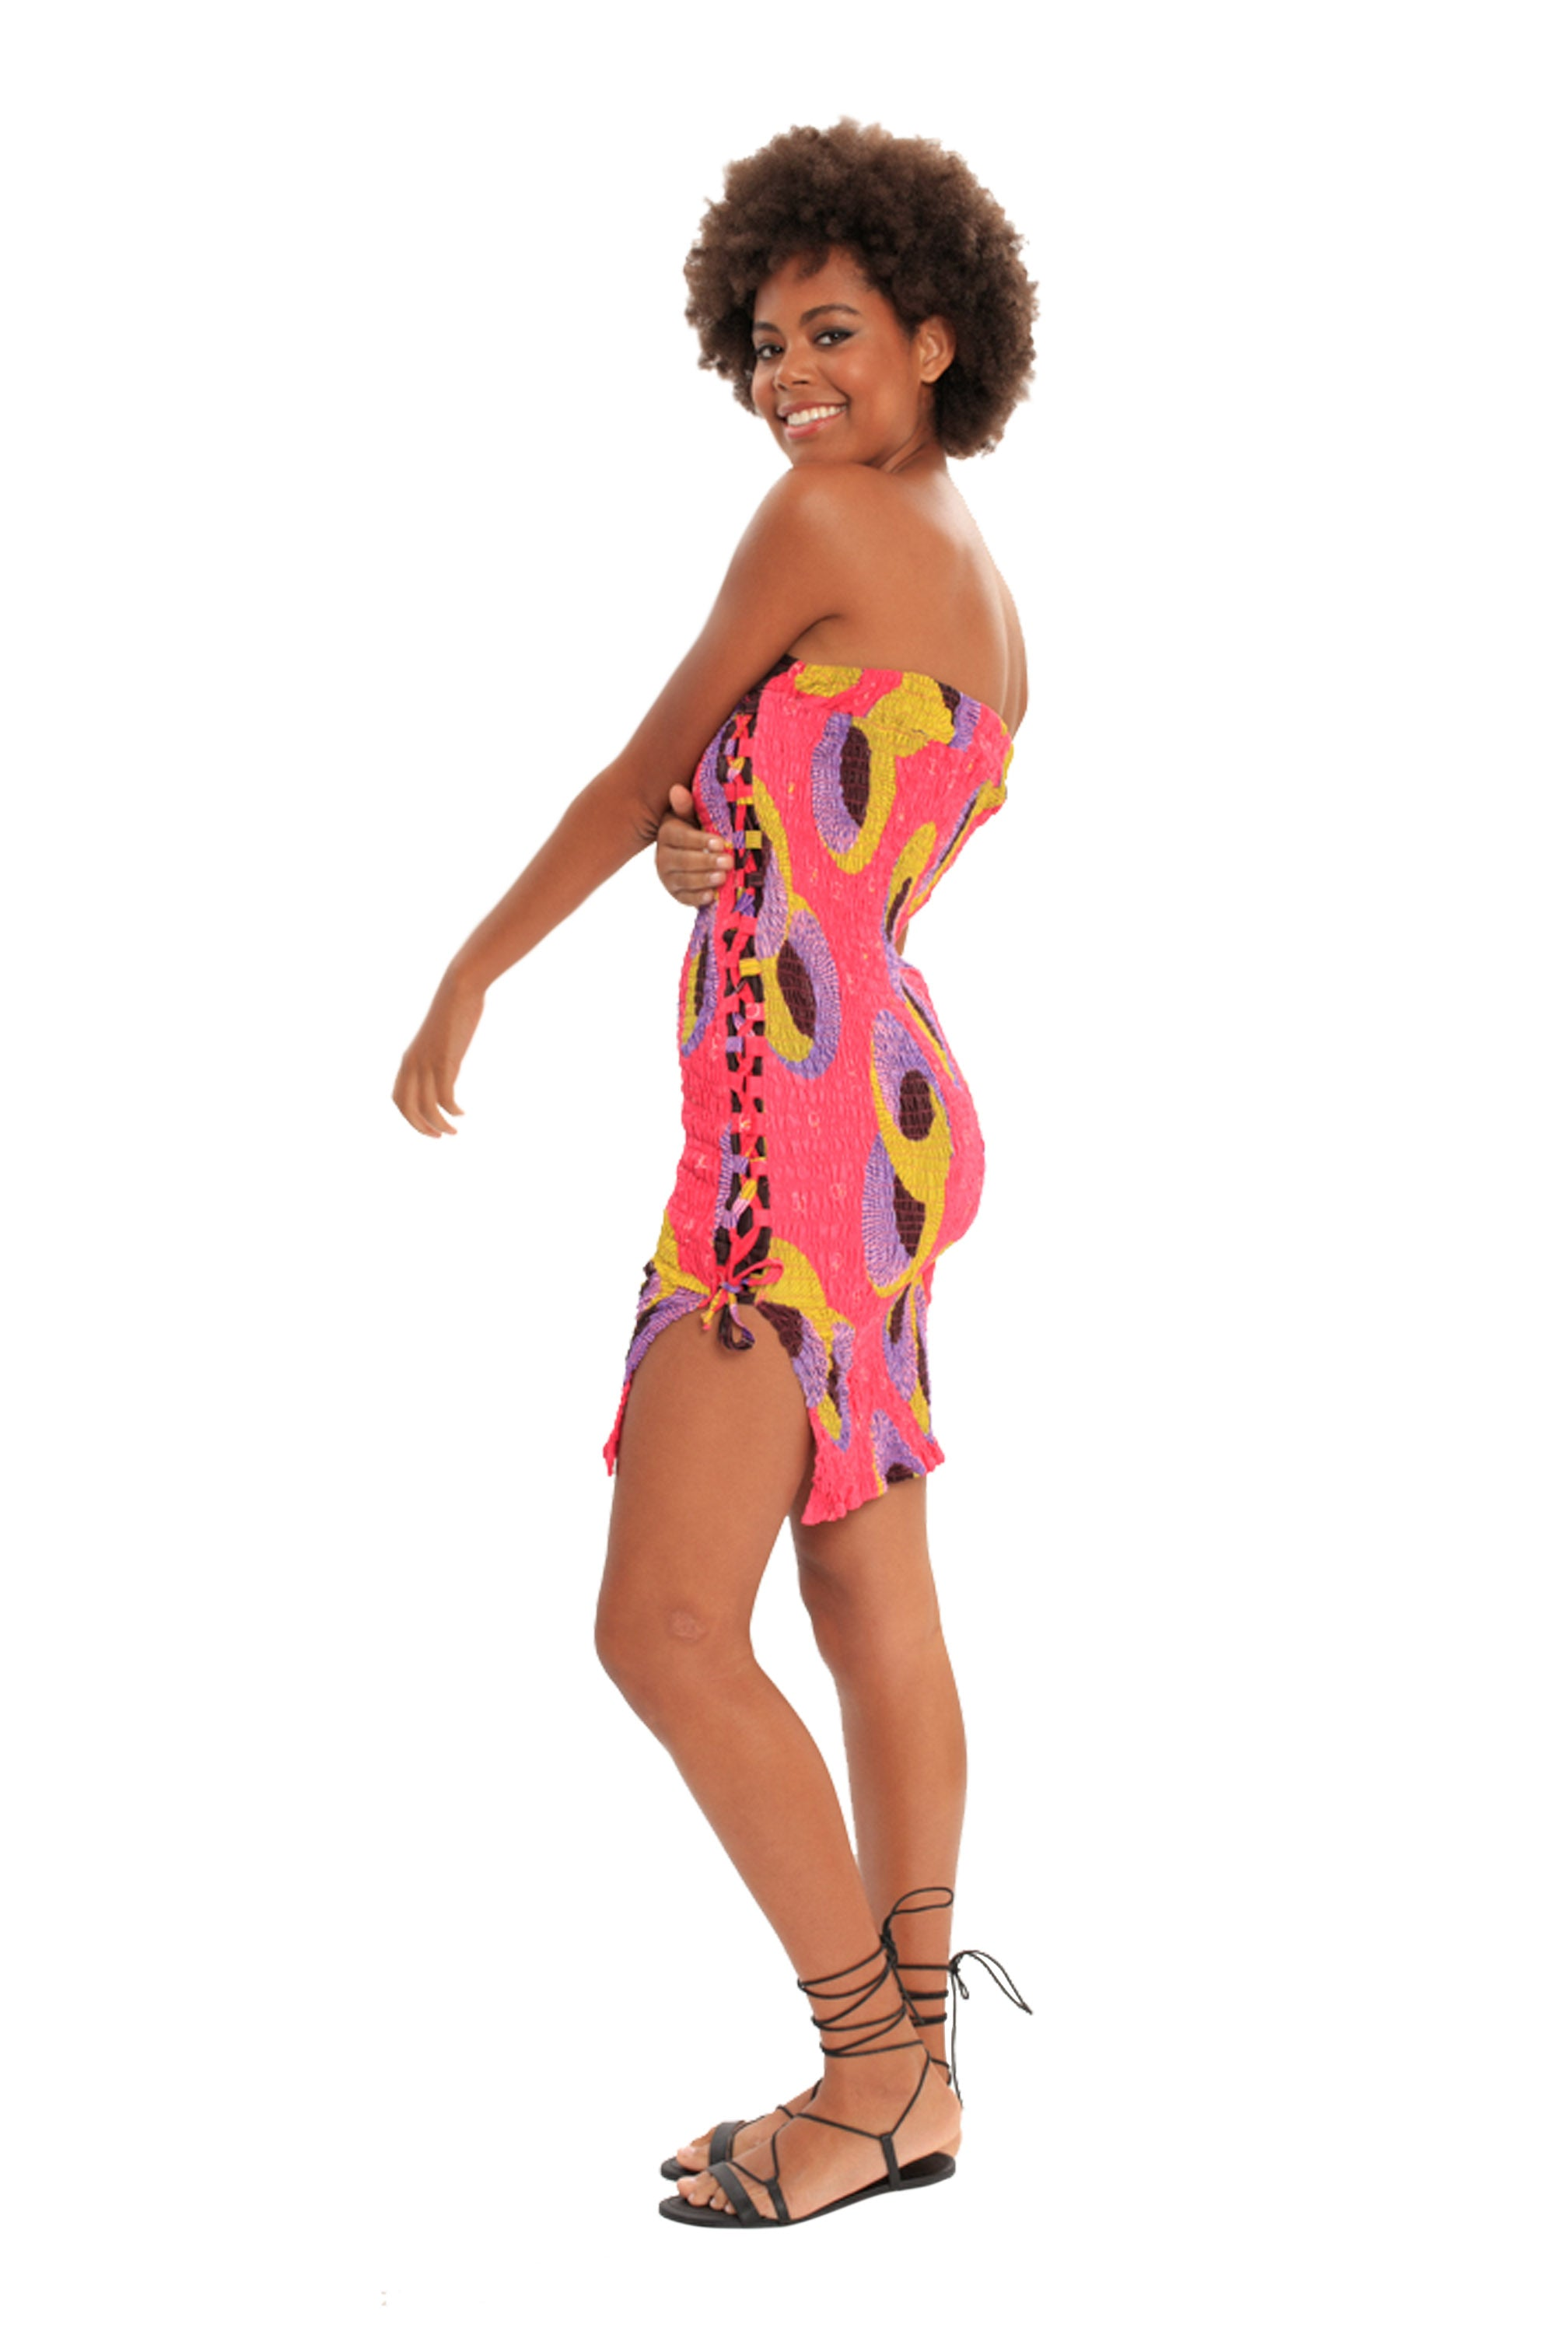 Keep Smiling Corset All in One African Print Skirt/Dress